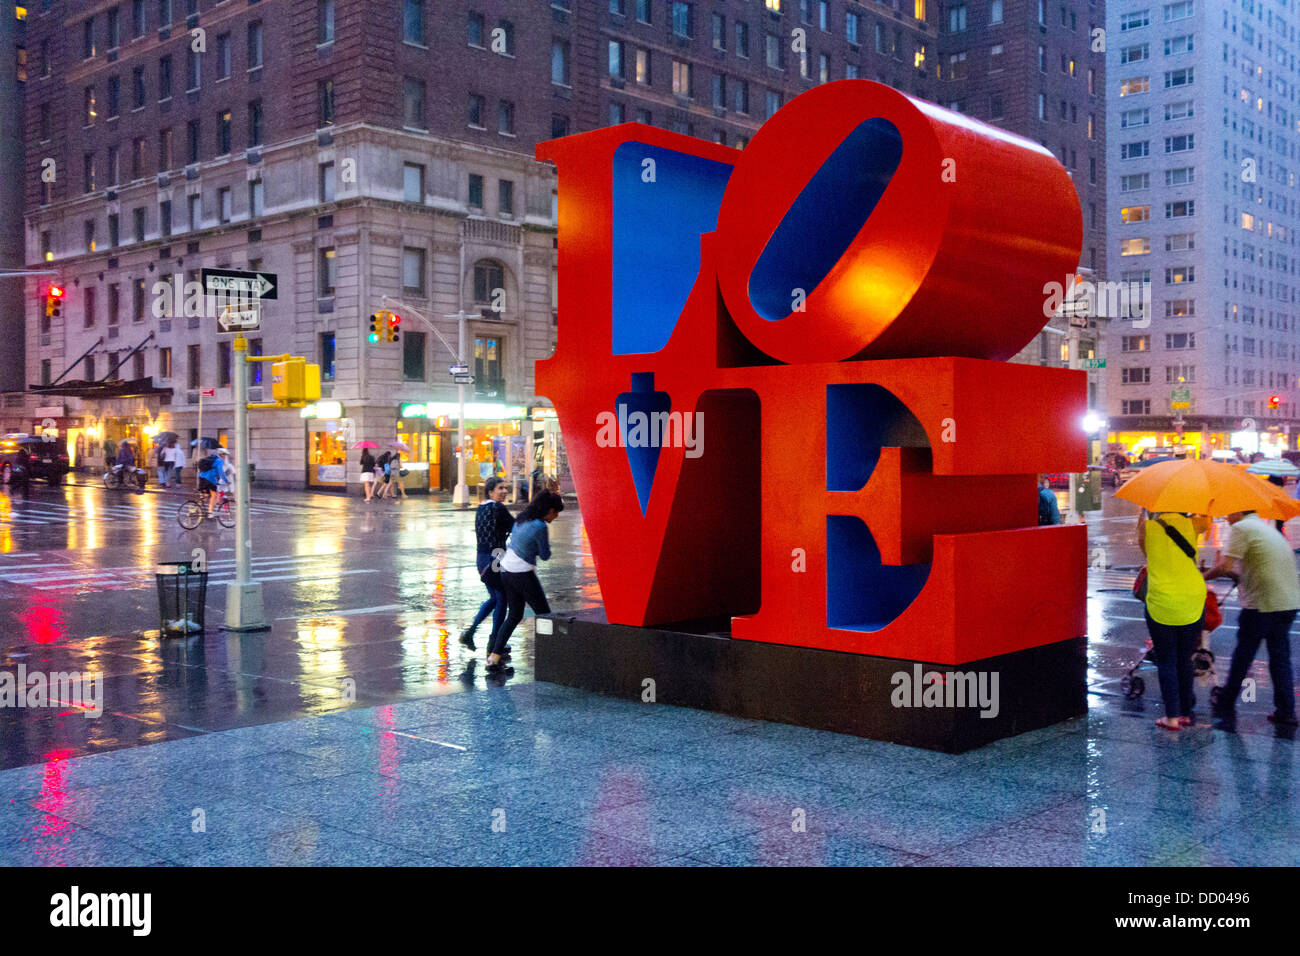 Love sculpture by Robert Indiana in NYC Stock Photo